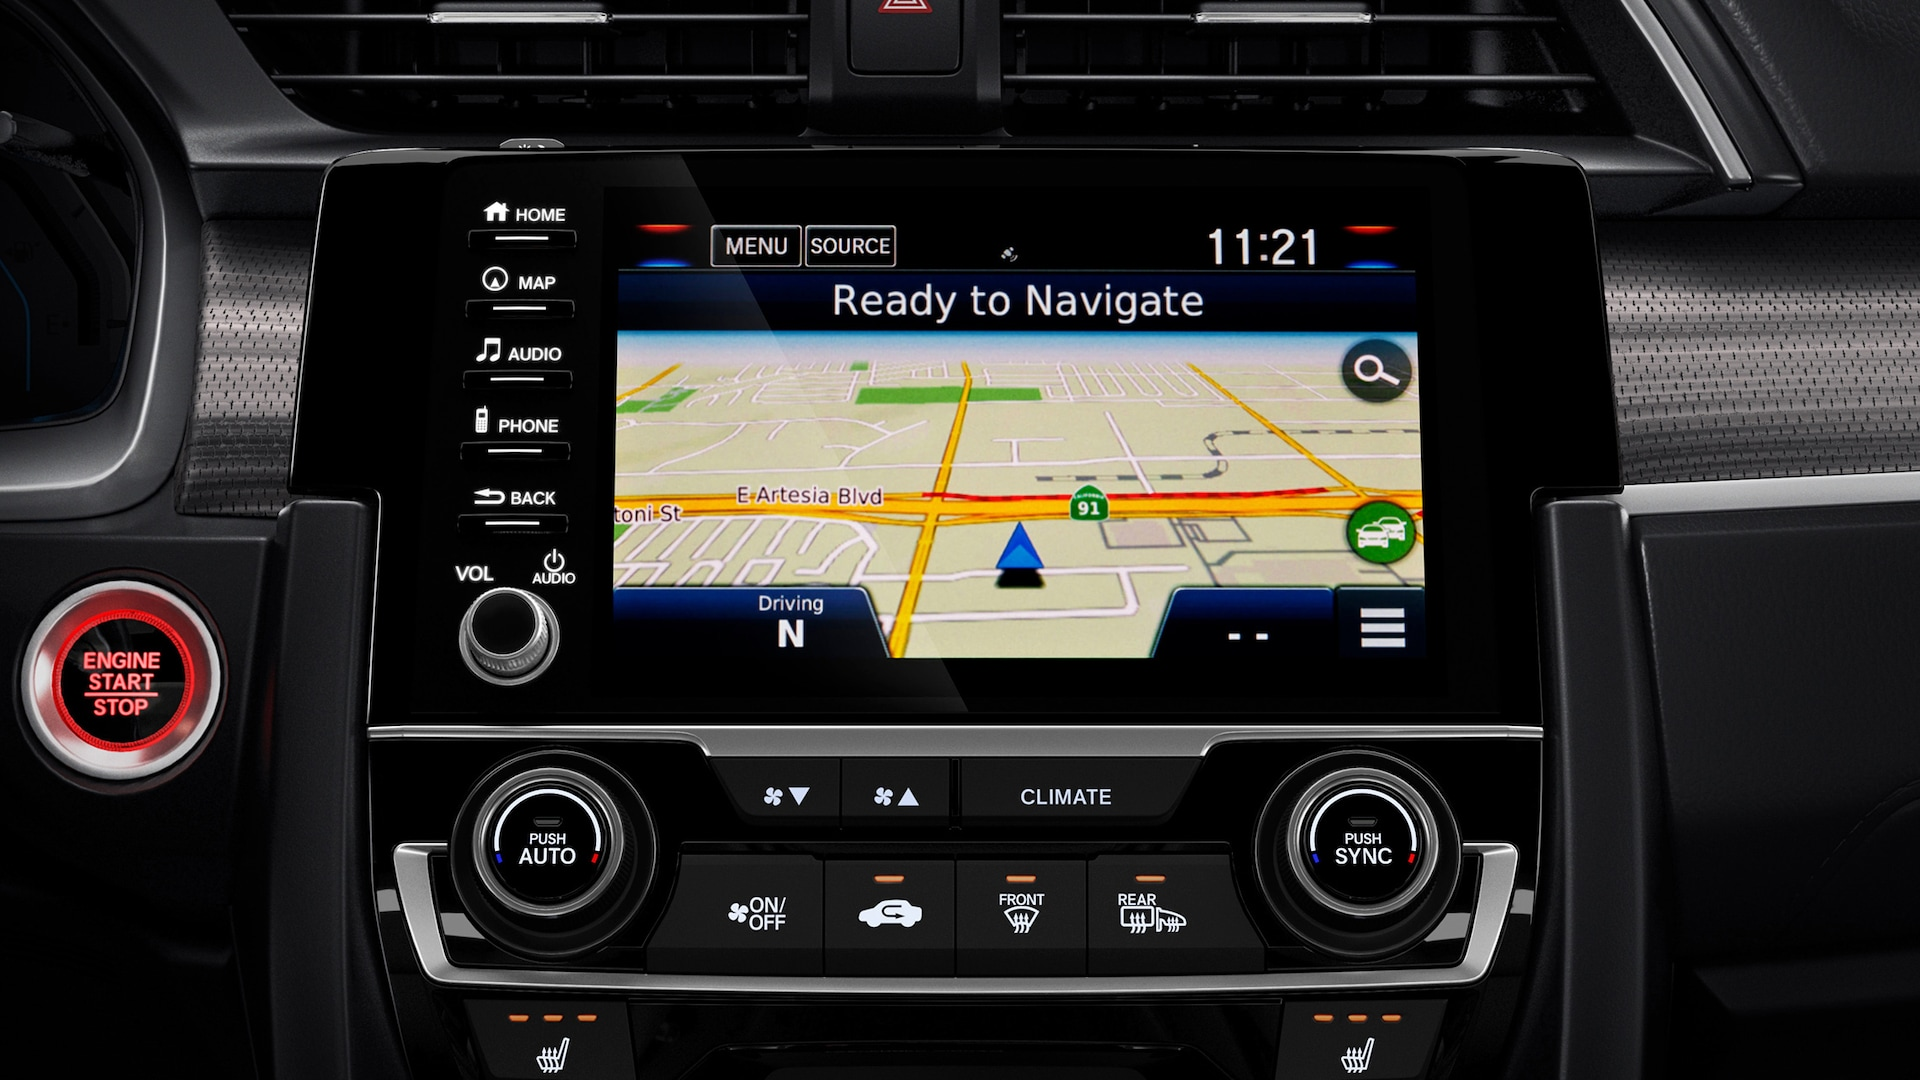 Honda Satellite-Linked Navigation System™ detail in the 2020 Honda Civic Coupe.